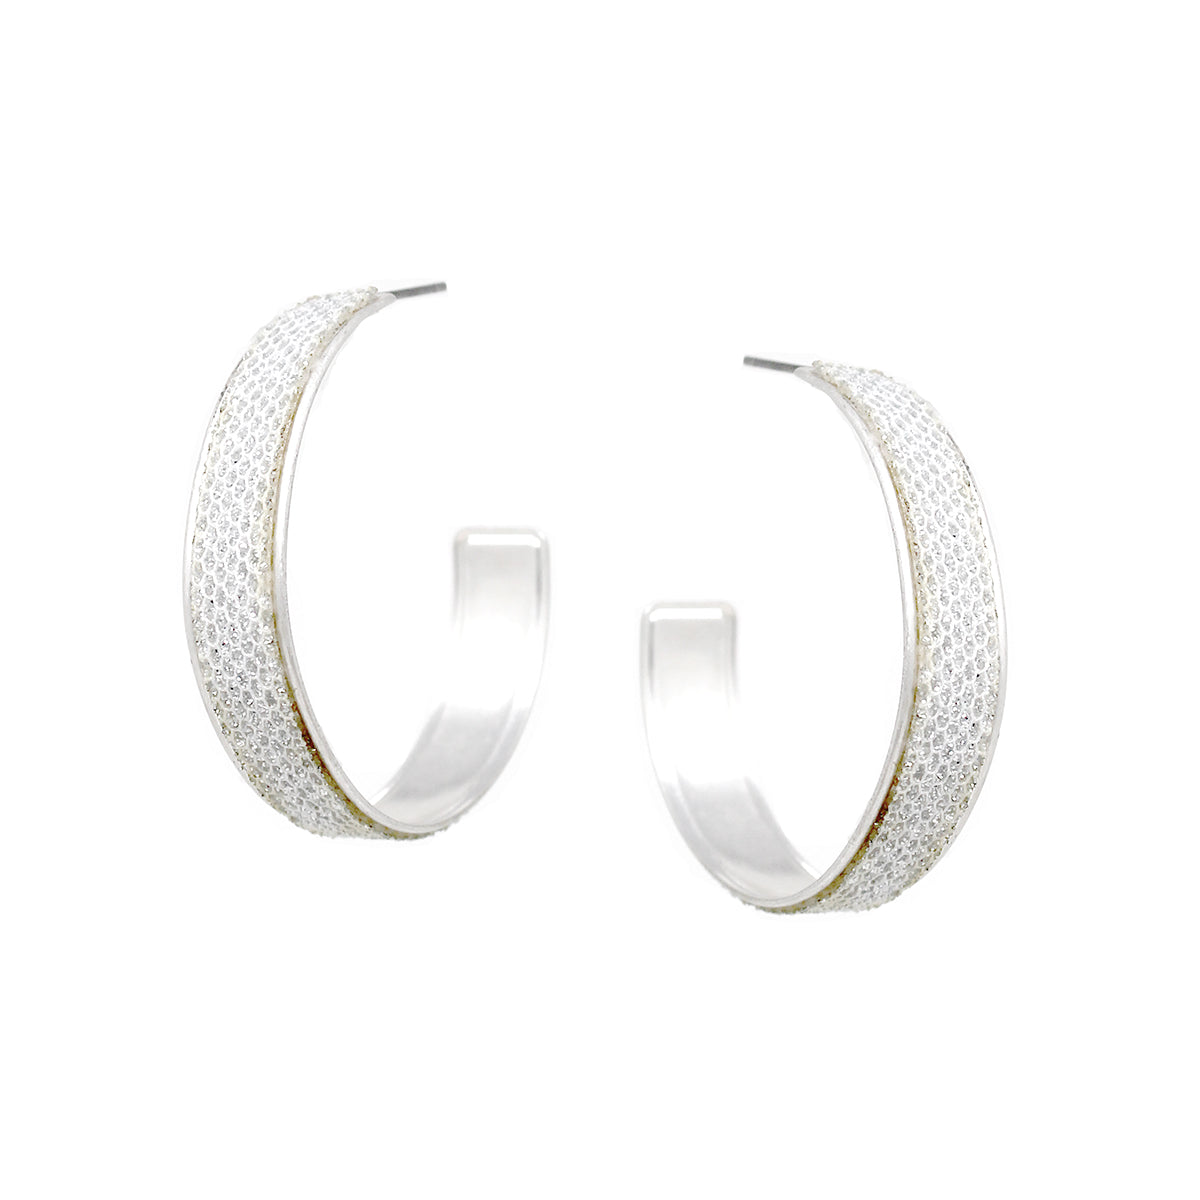 Glitter Fabric Embellished Edge Hoop Earrings